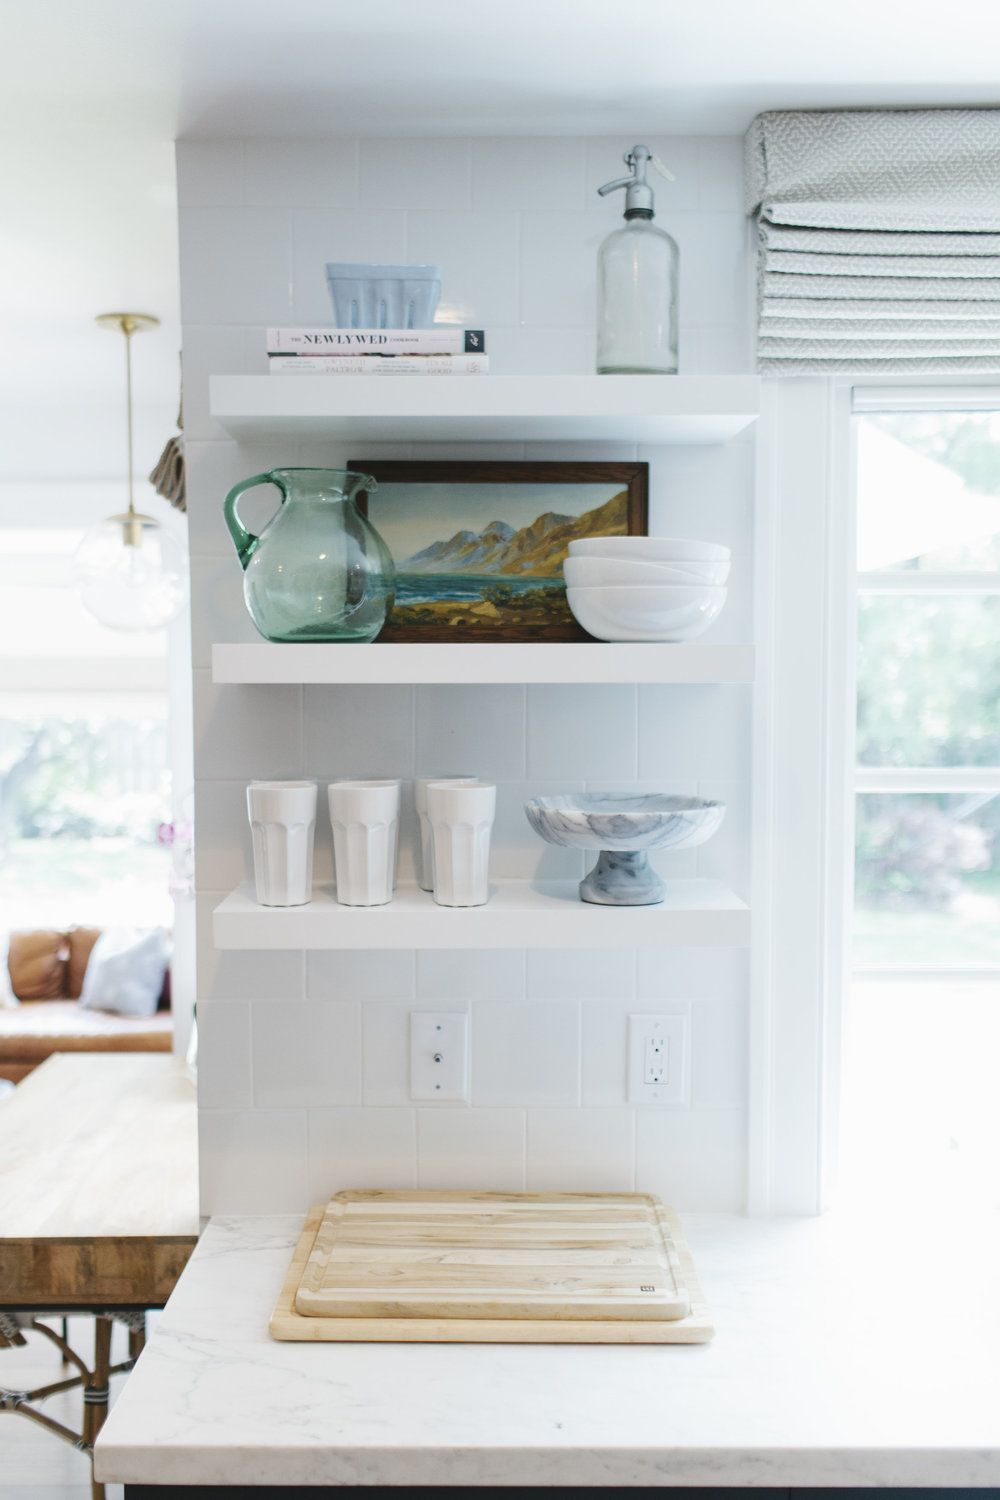 Lynwood Remodel: Kitchen | Studio mcgee, Open shelves and Shelves